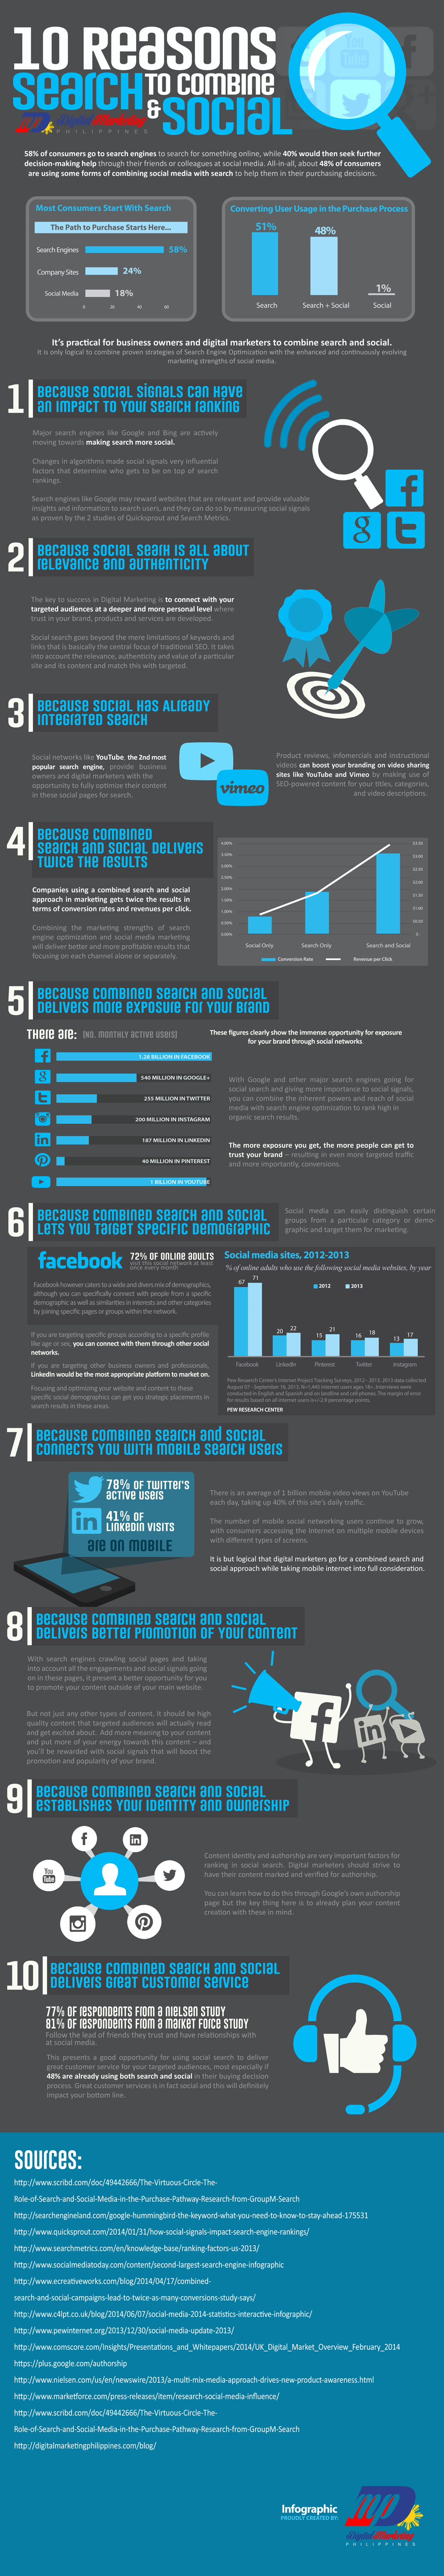 10-Reasons-to-Combine-Search-and-Social